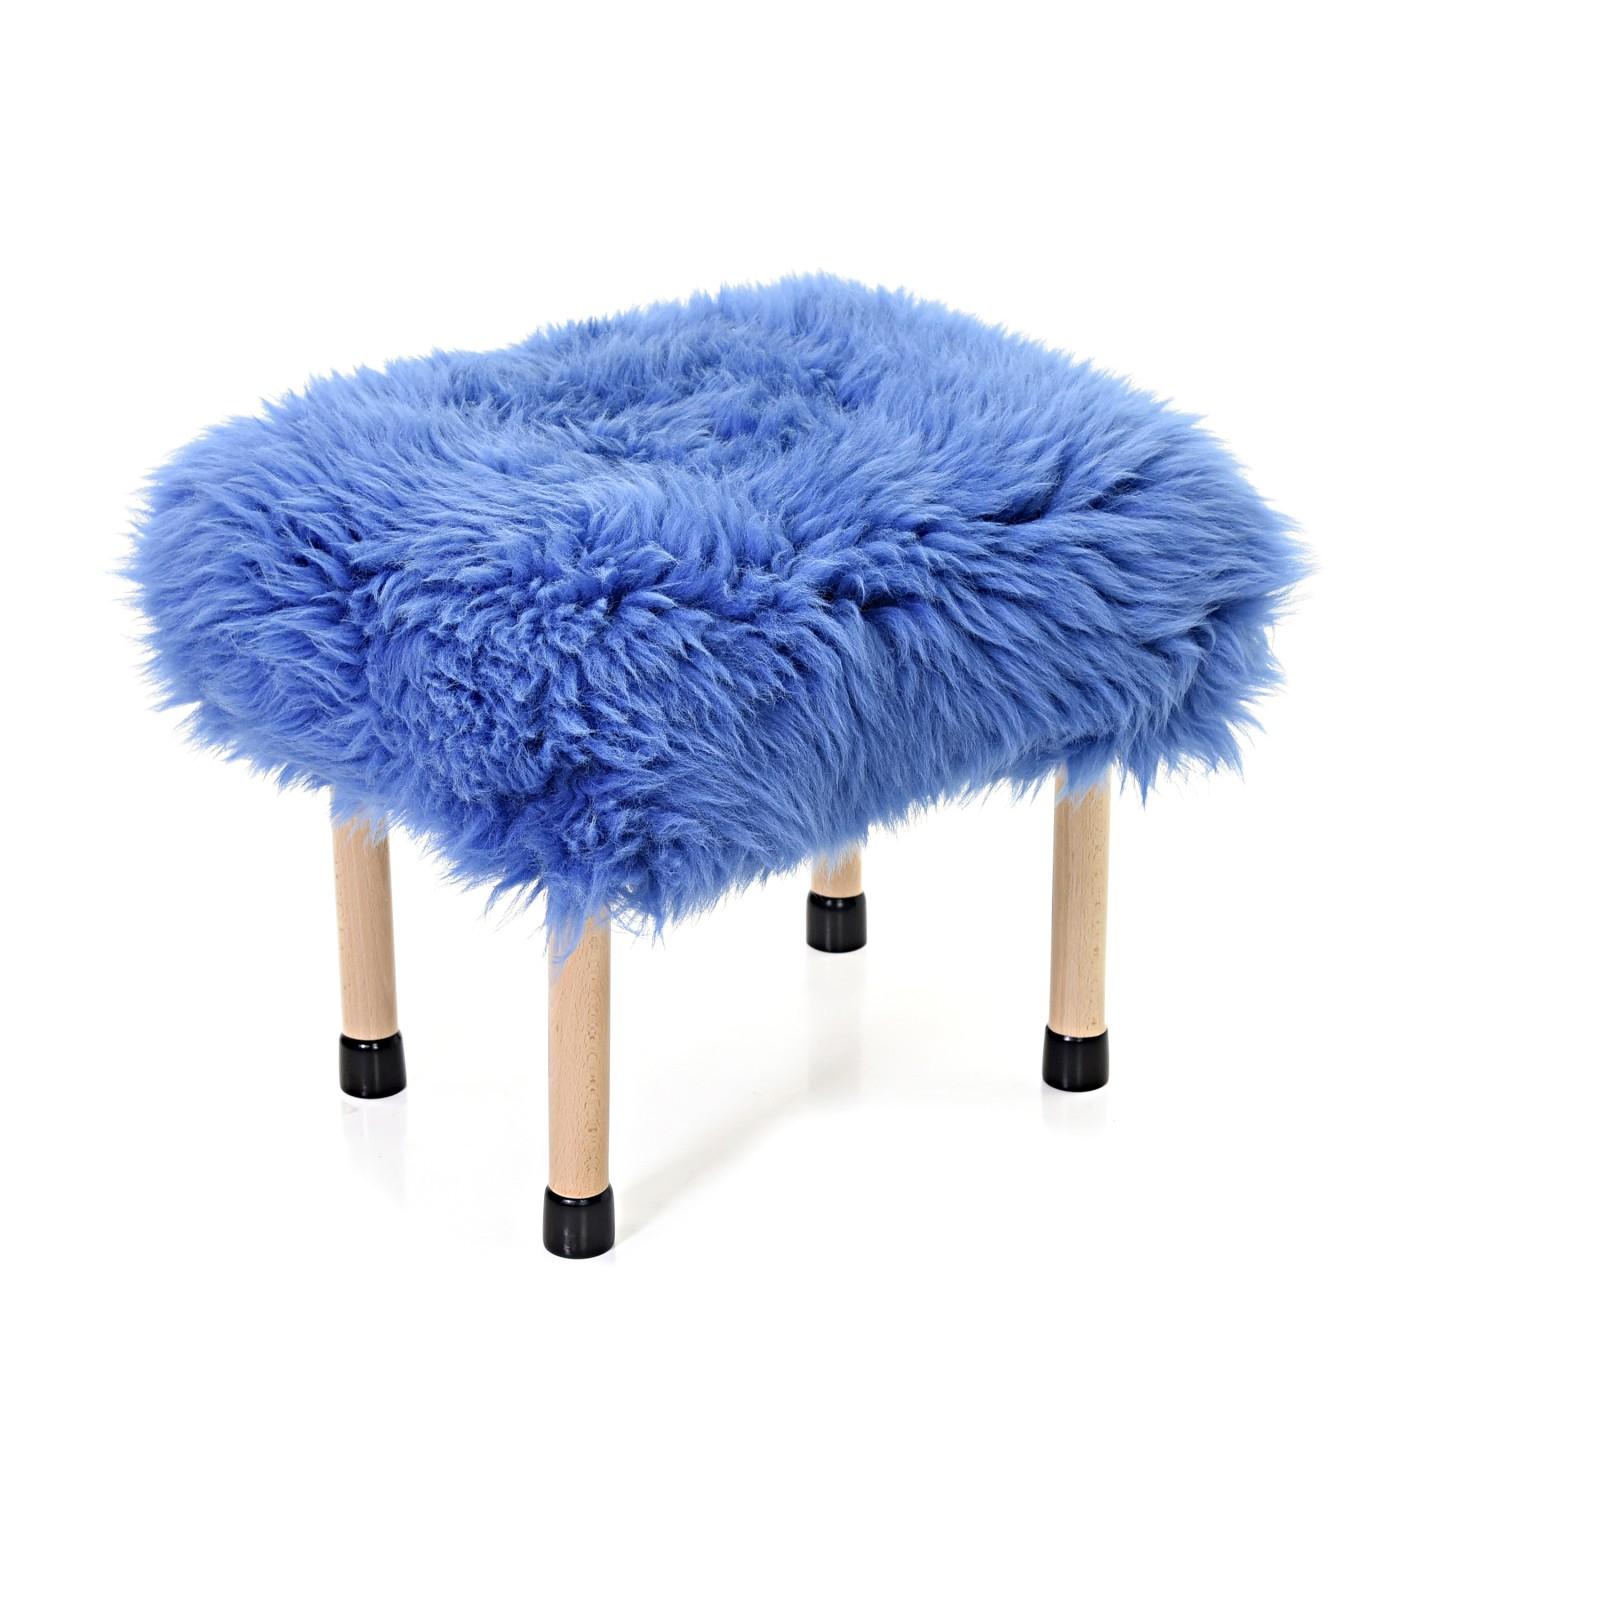 Nerys Sheepskin Footstool Cornflower Blue